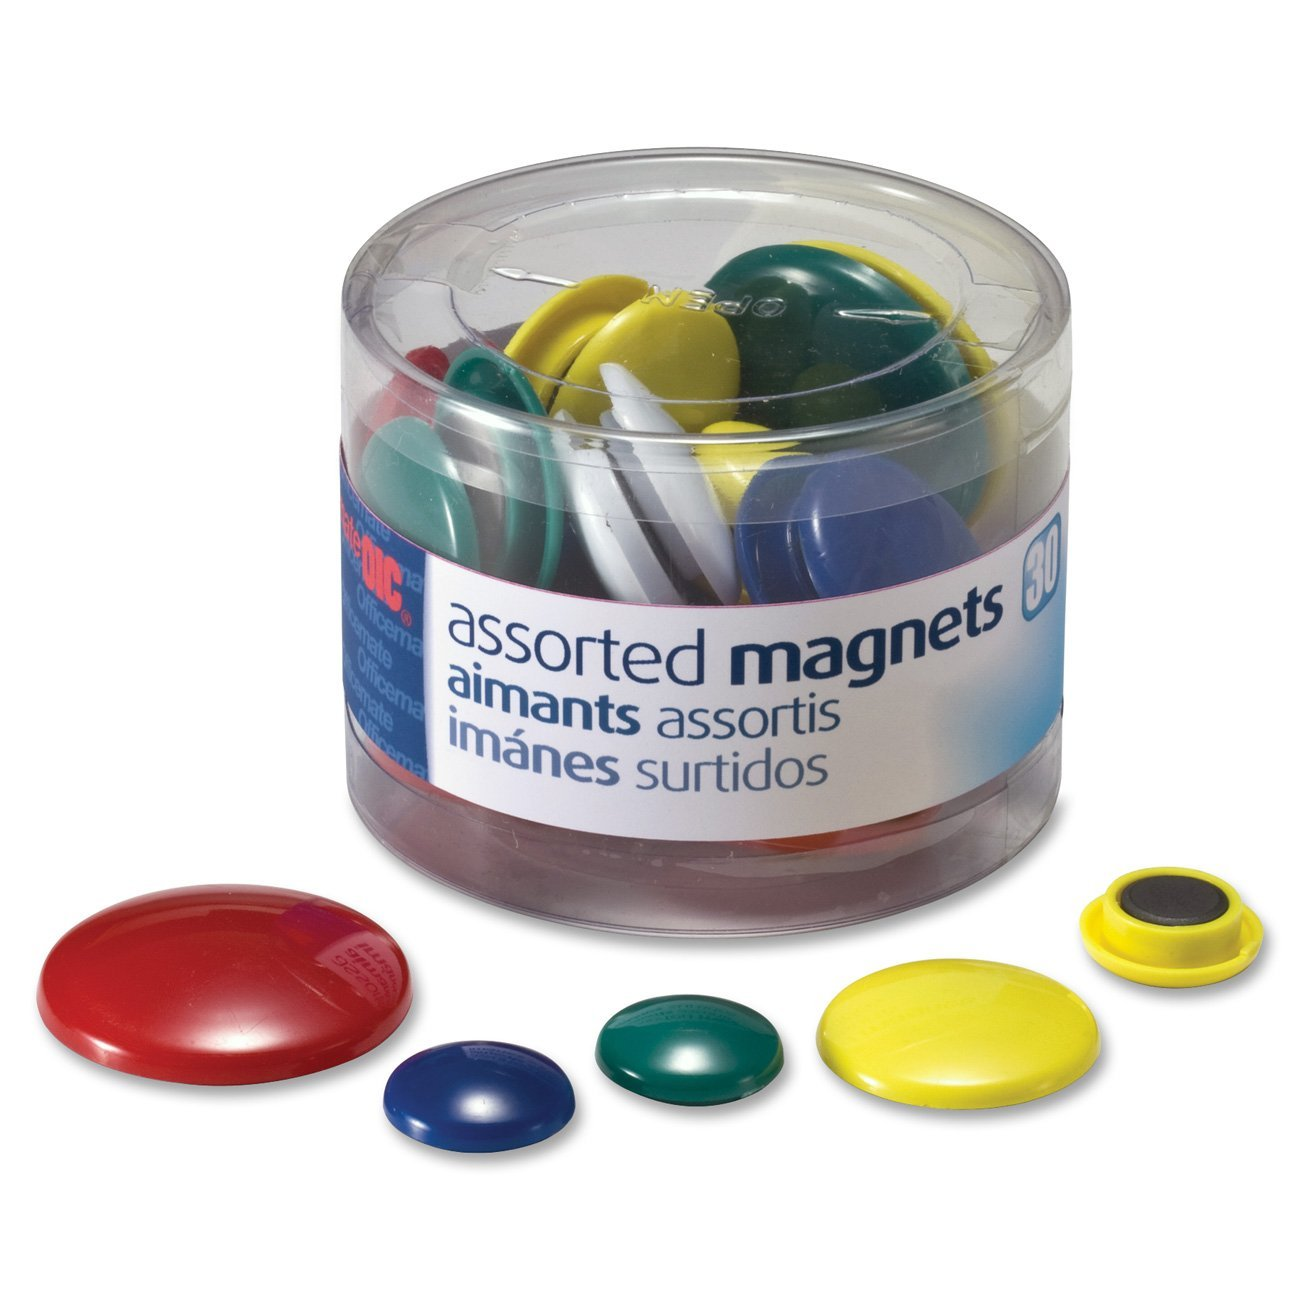 Magnets, Assorted Sizes and Colors, 30 per Tub (92500), Pack of 12 by Officemate